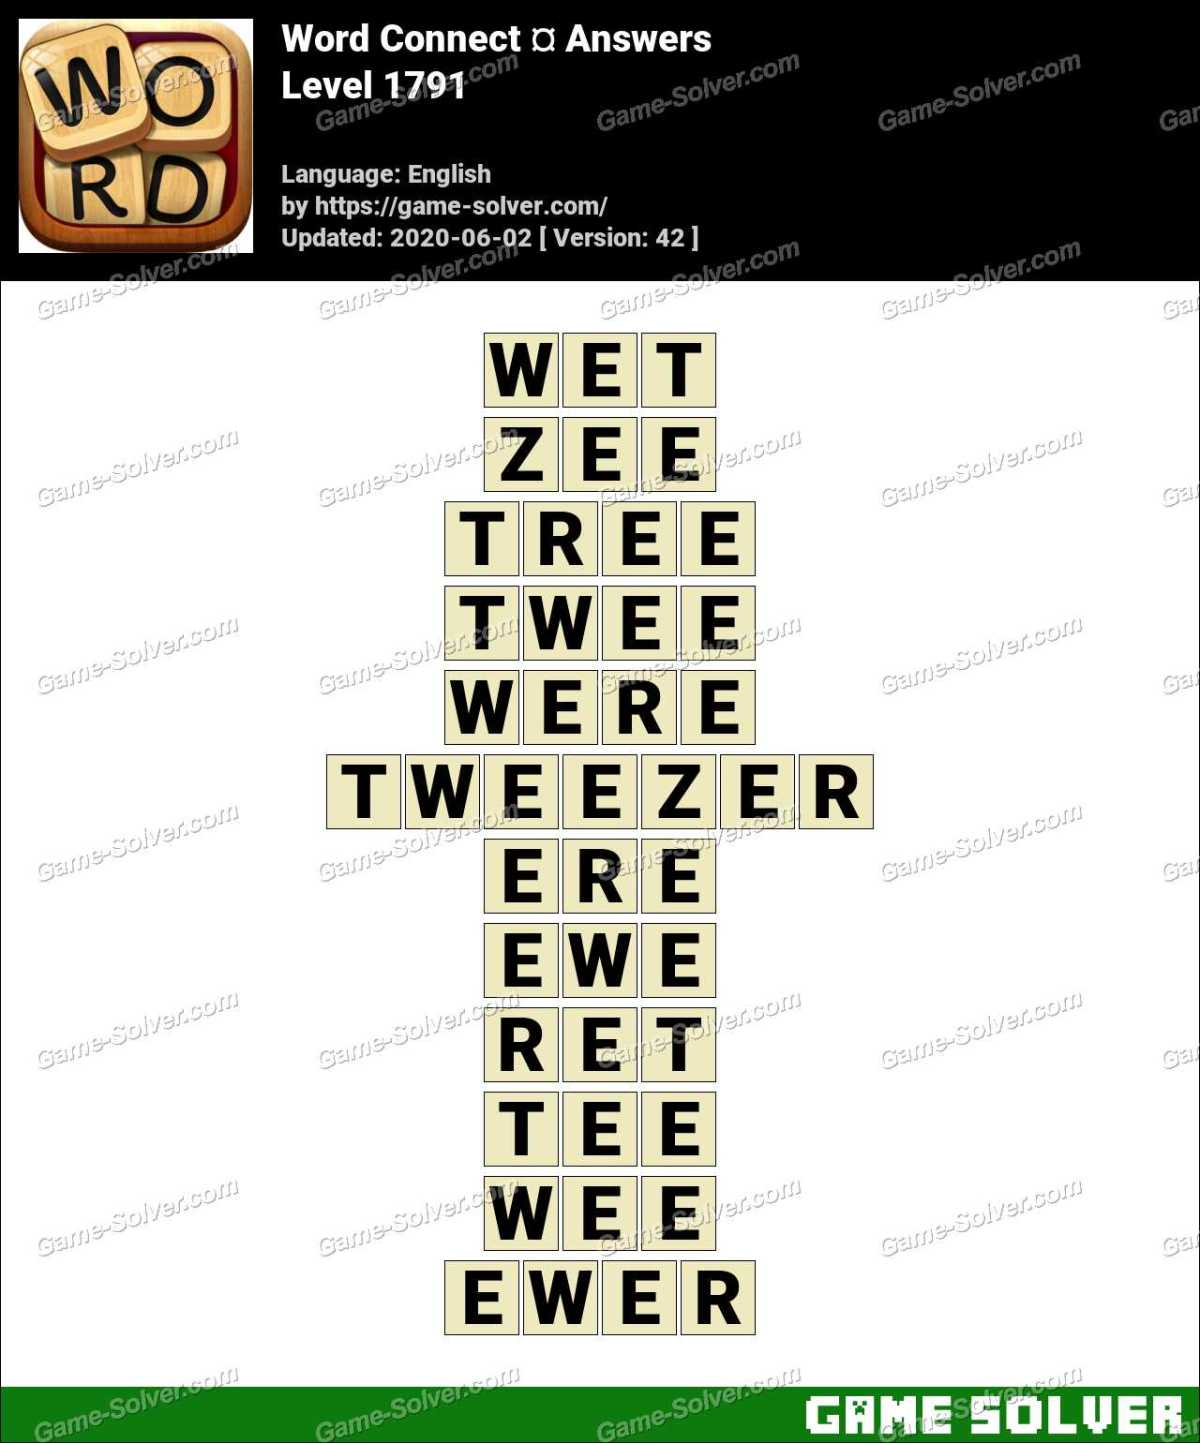 Word Connect Level 1791 Answers